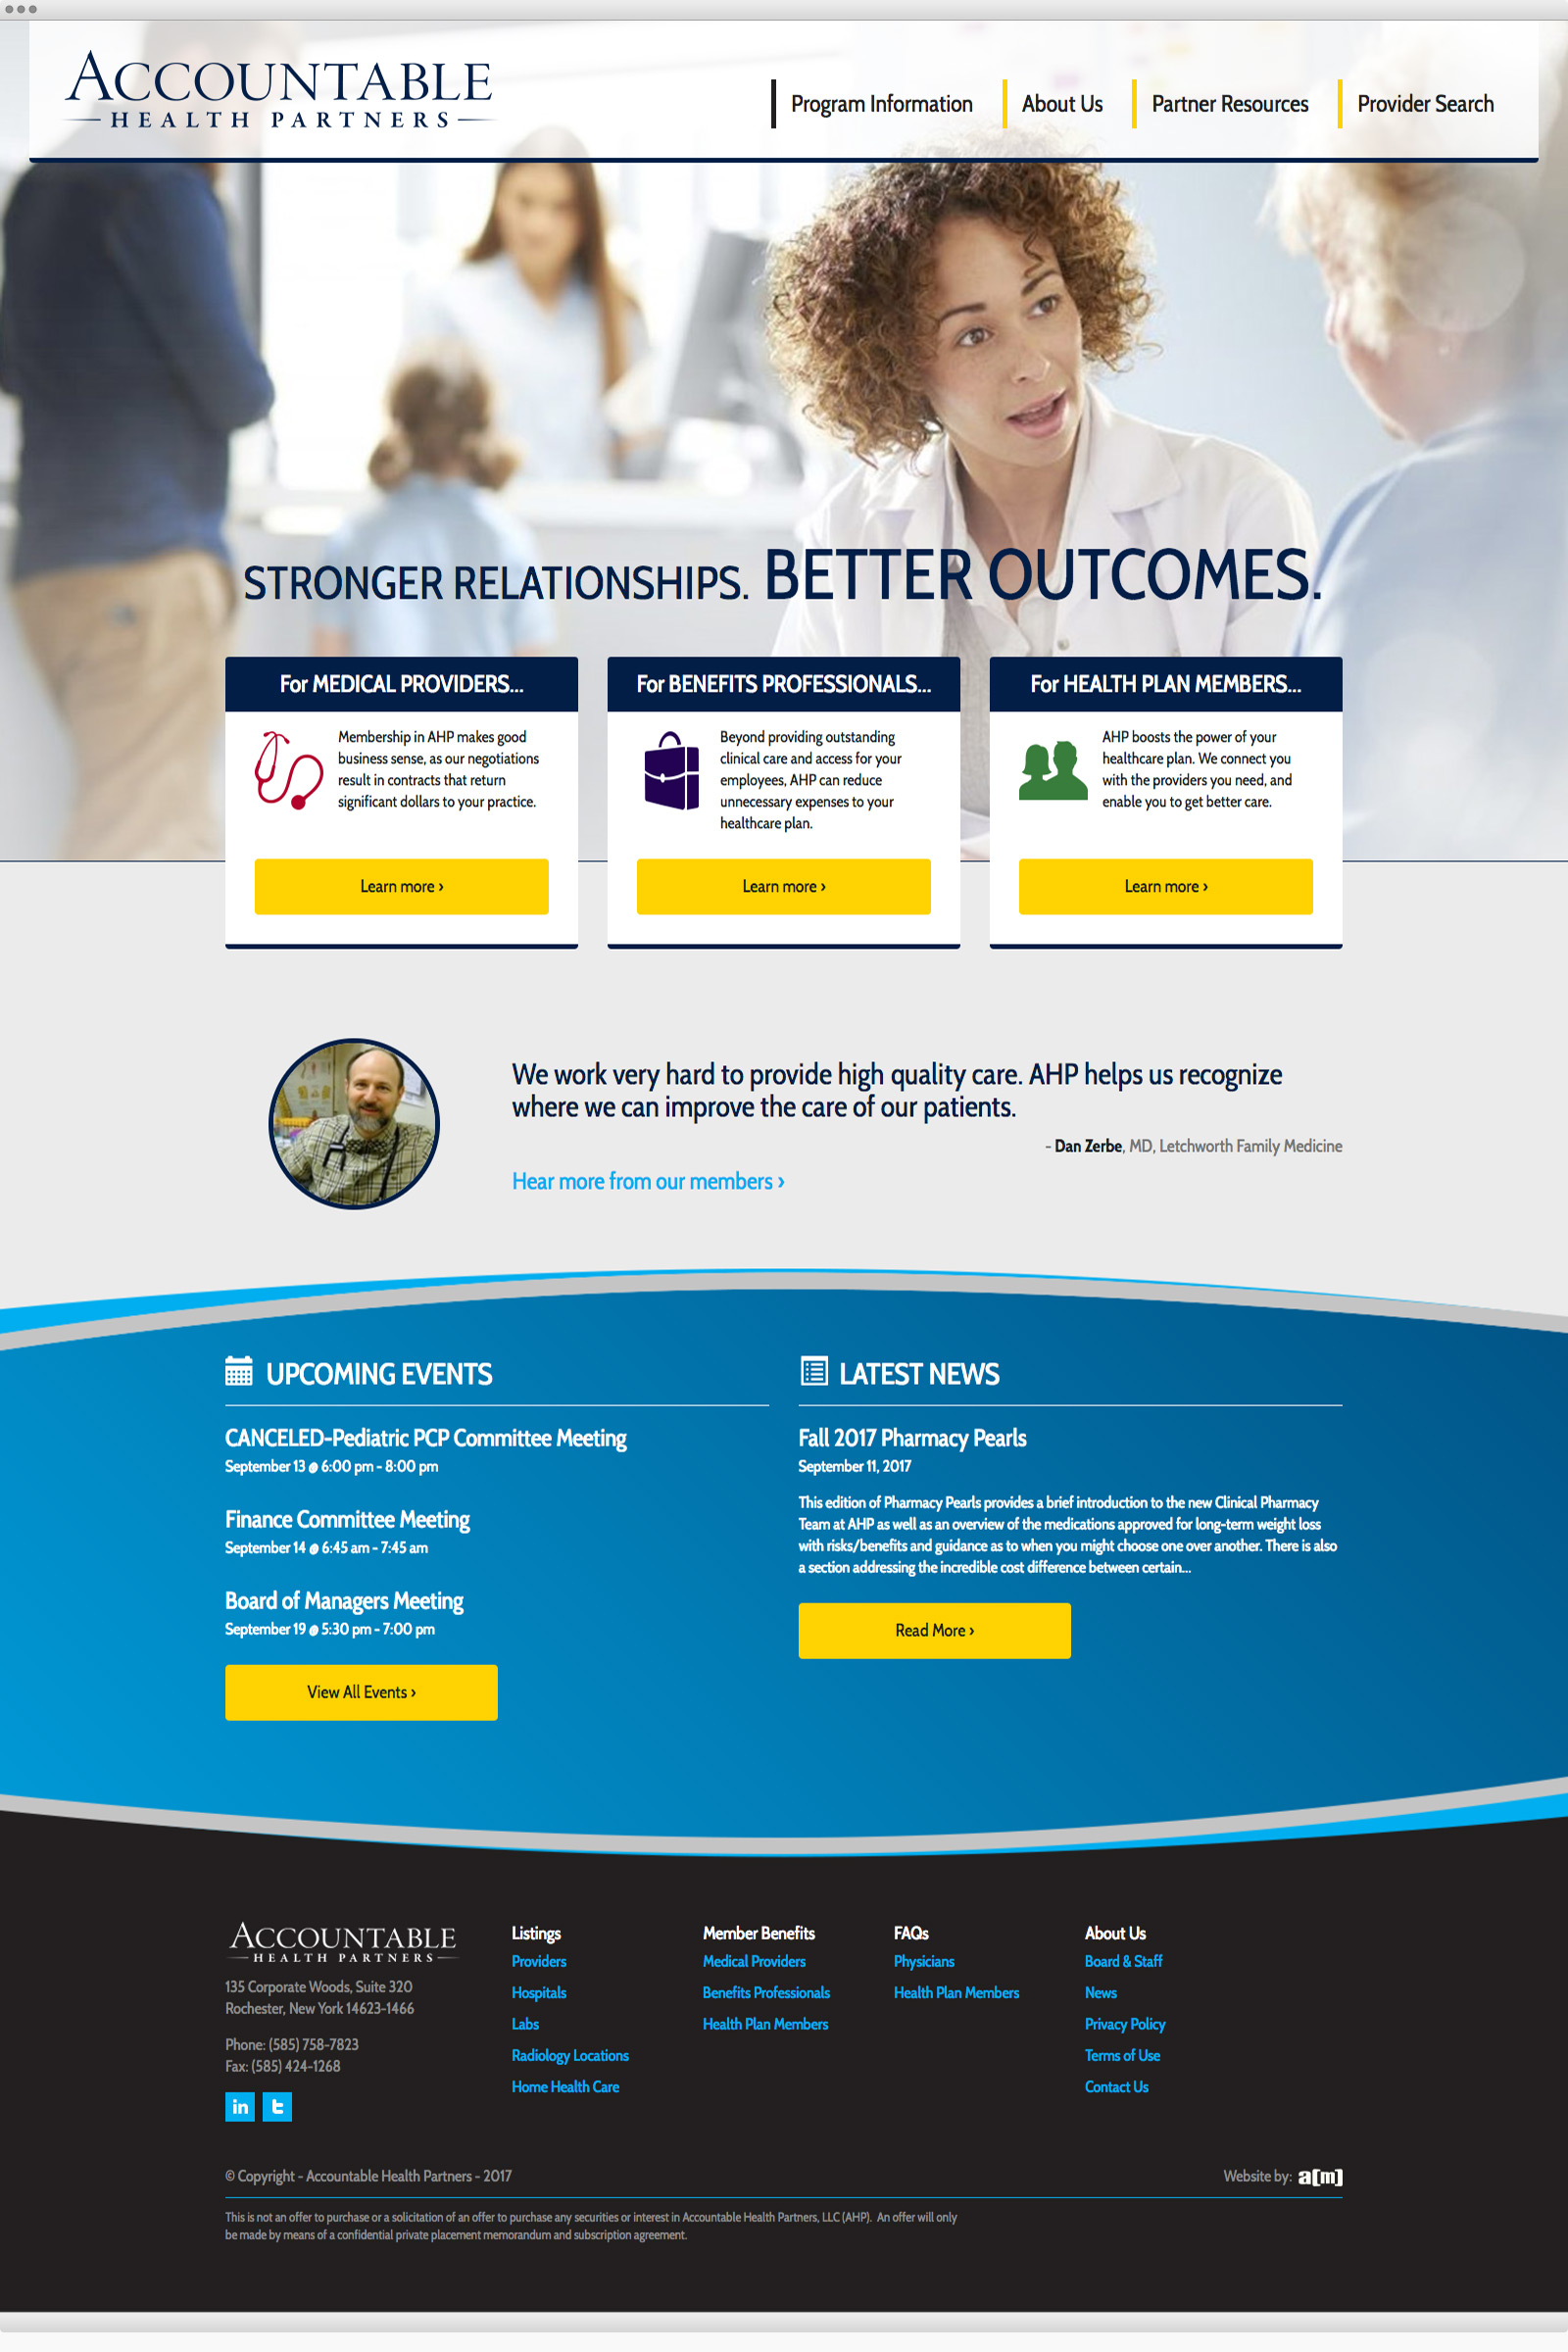 Accountable Health Partners website design